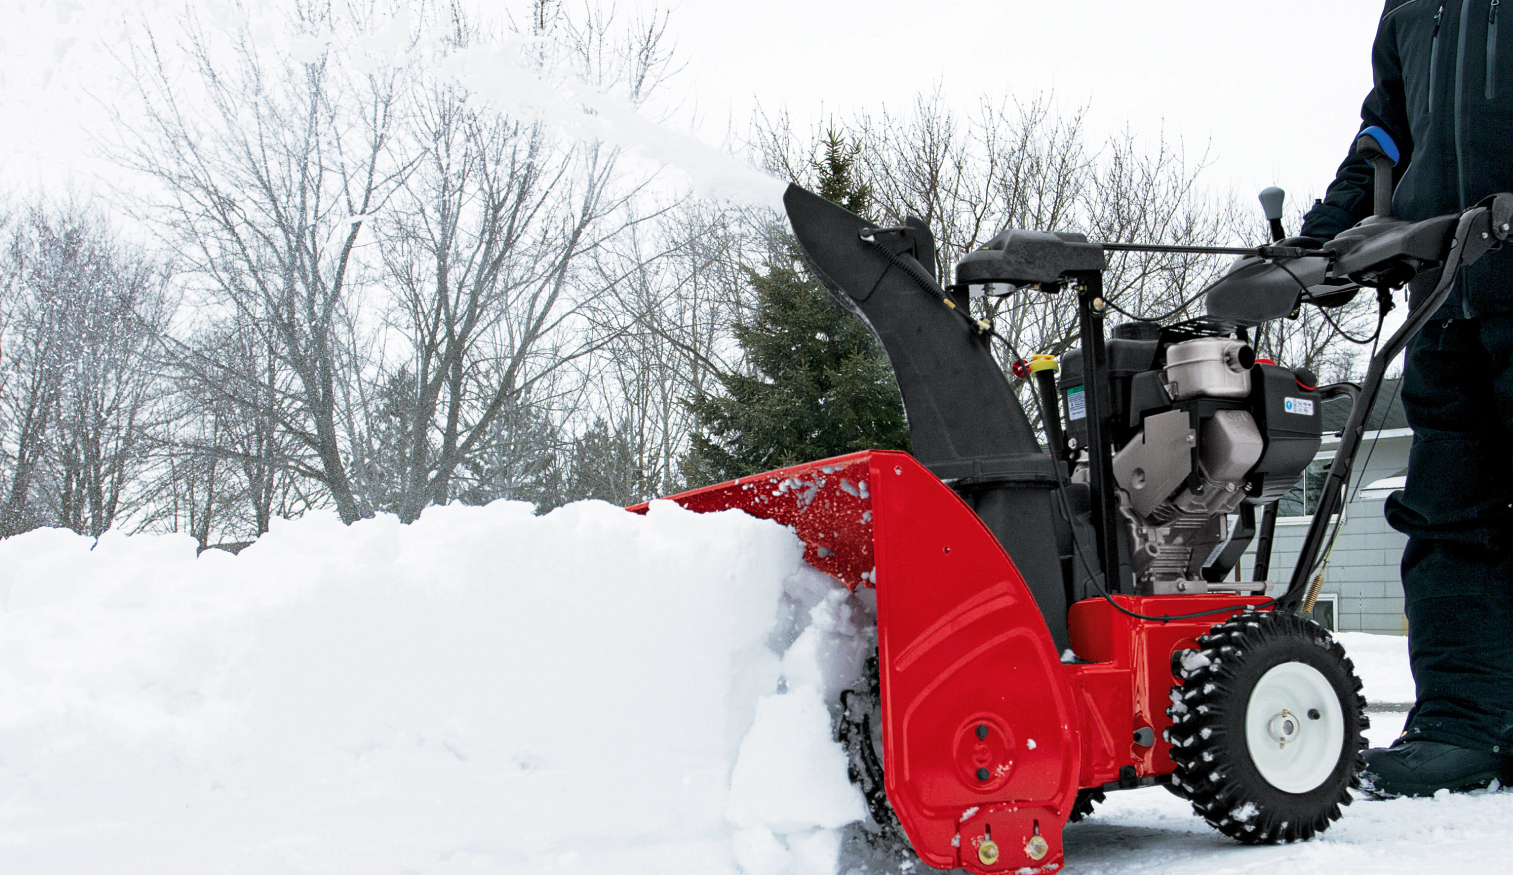 Outdoor Power Equipment Institute Encouraging Home/Business Owners to Practice Safety with Snow Blowers